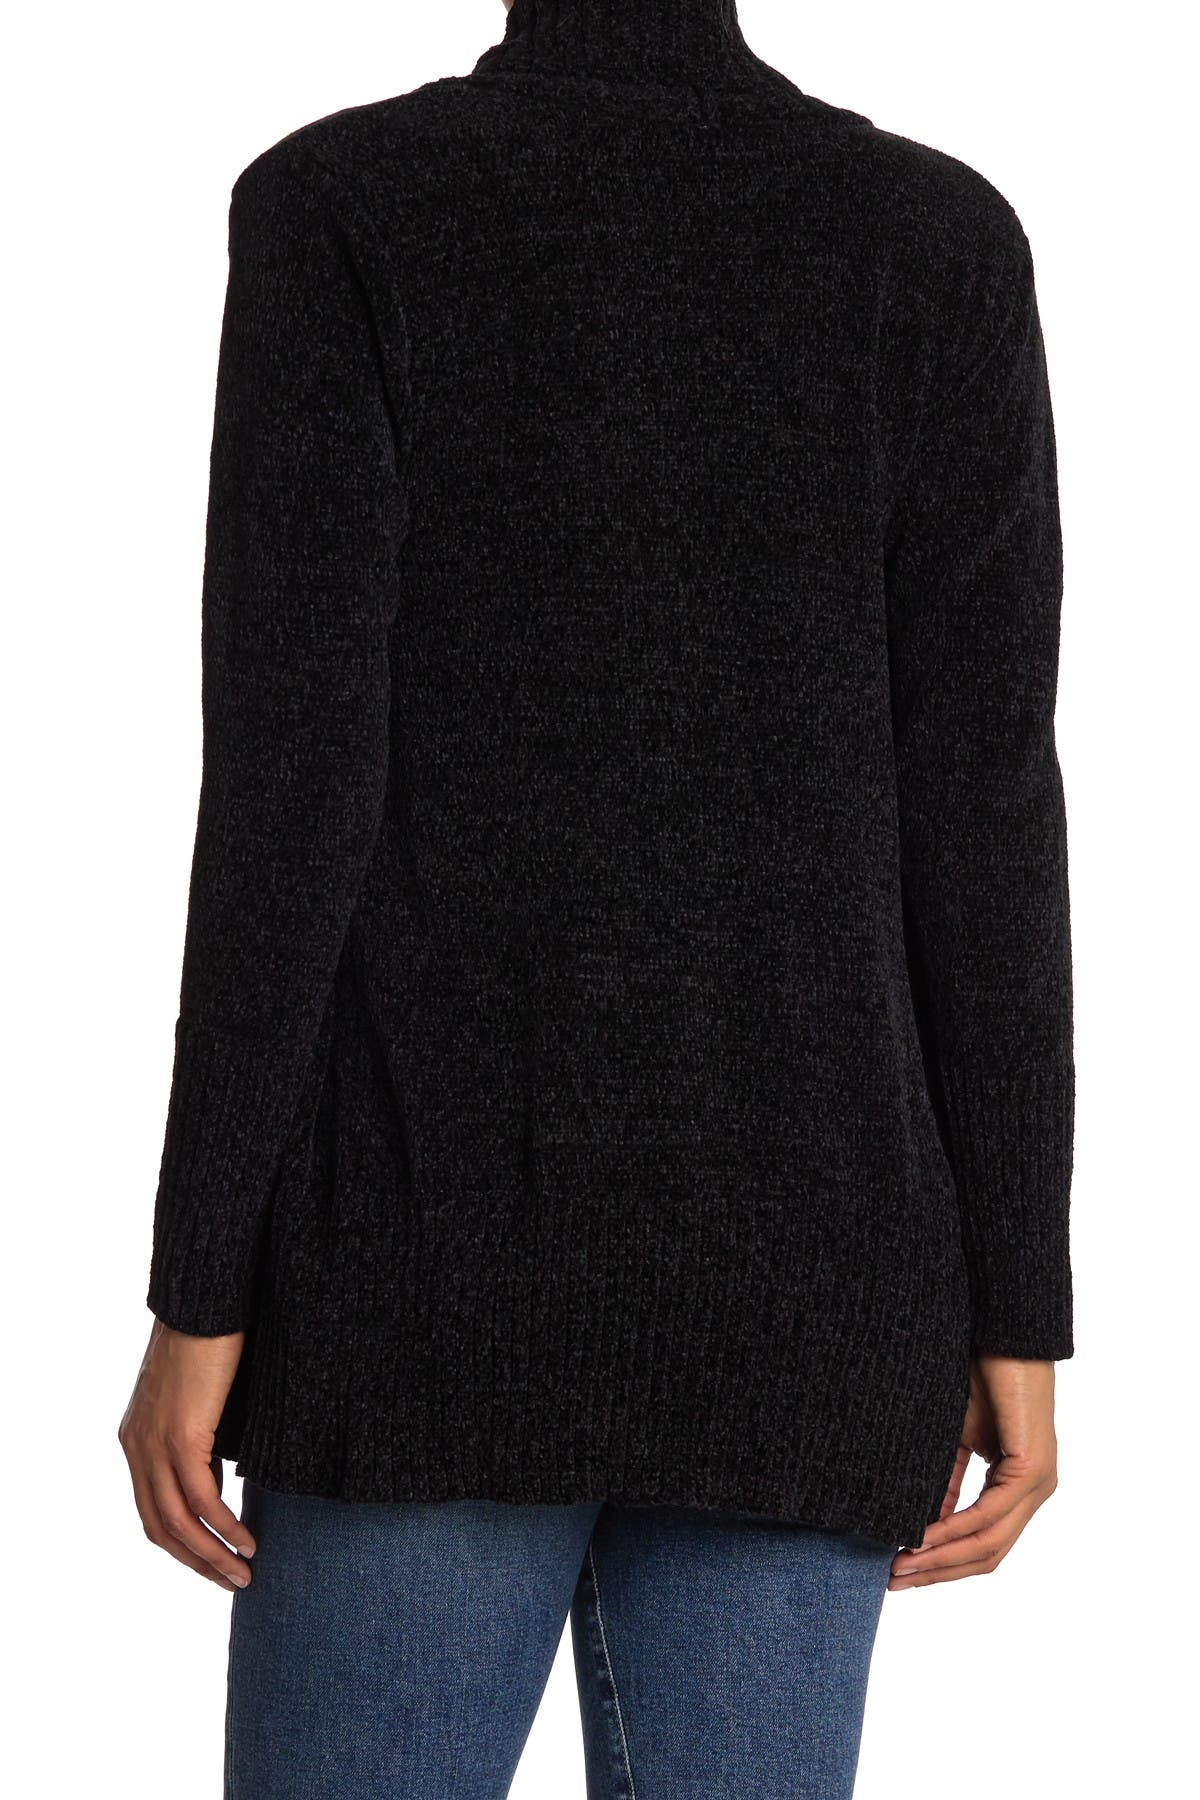 Image of Seven7 Open Front Knit Cardigan